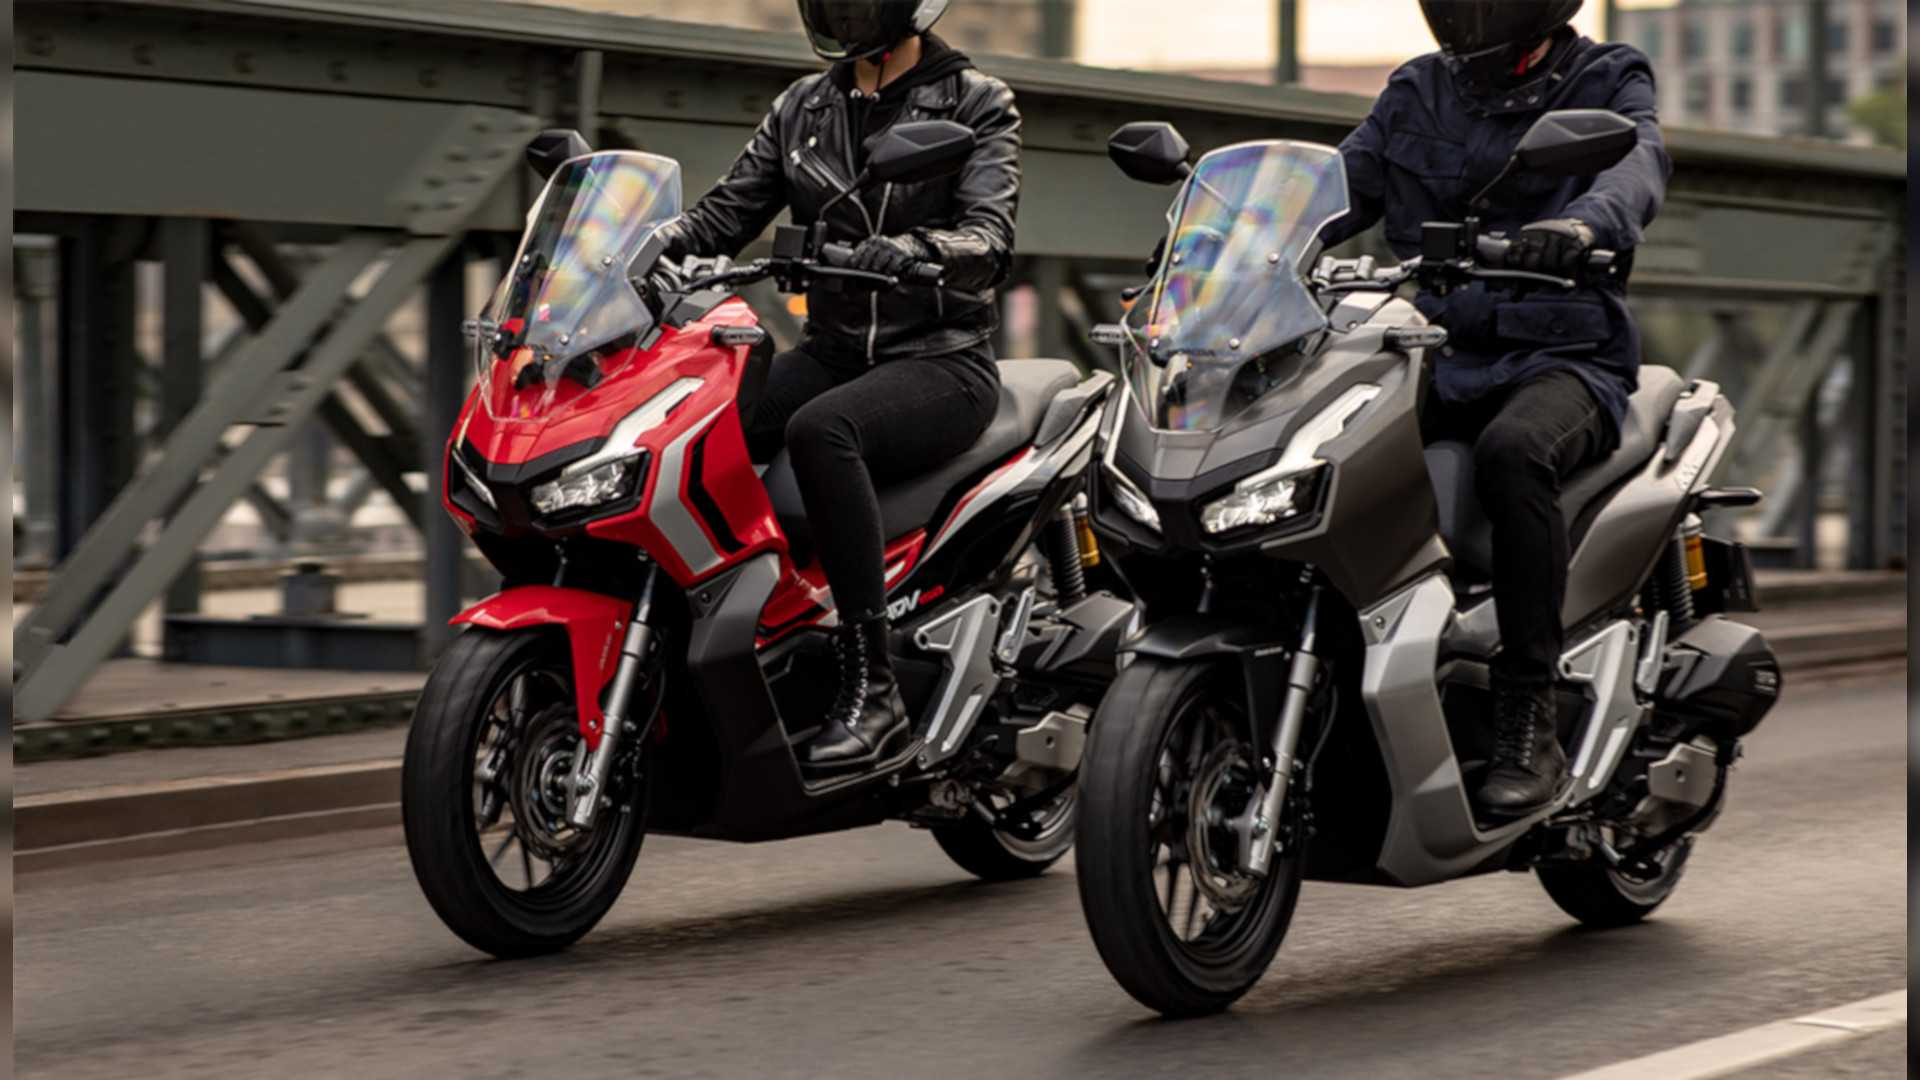 Could The Honda ADV 160 Be In The Works?